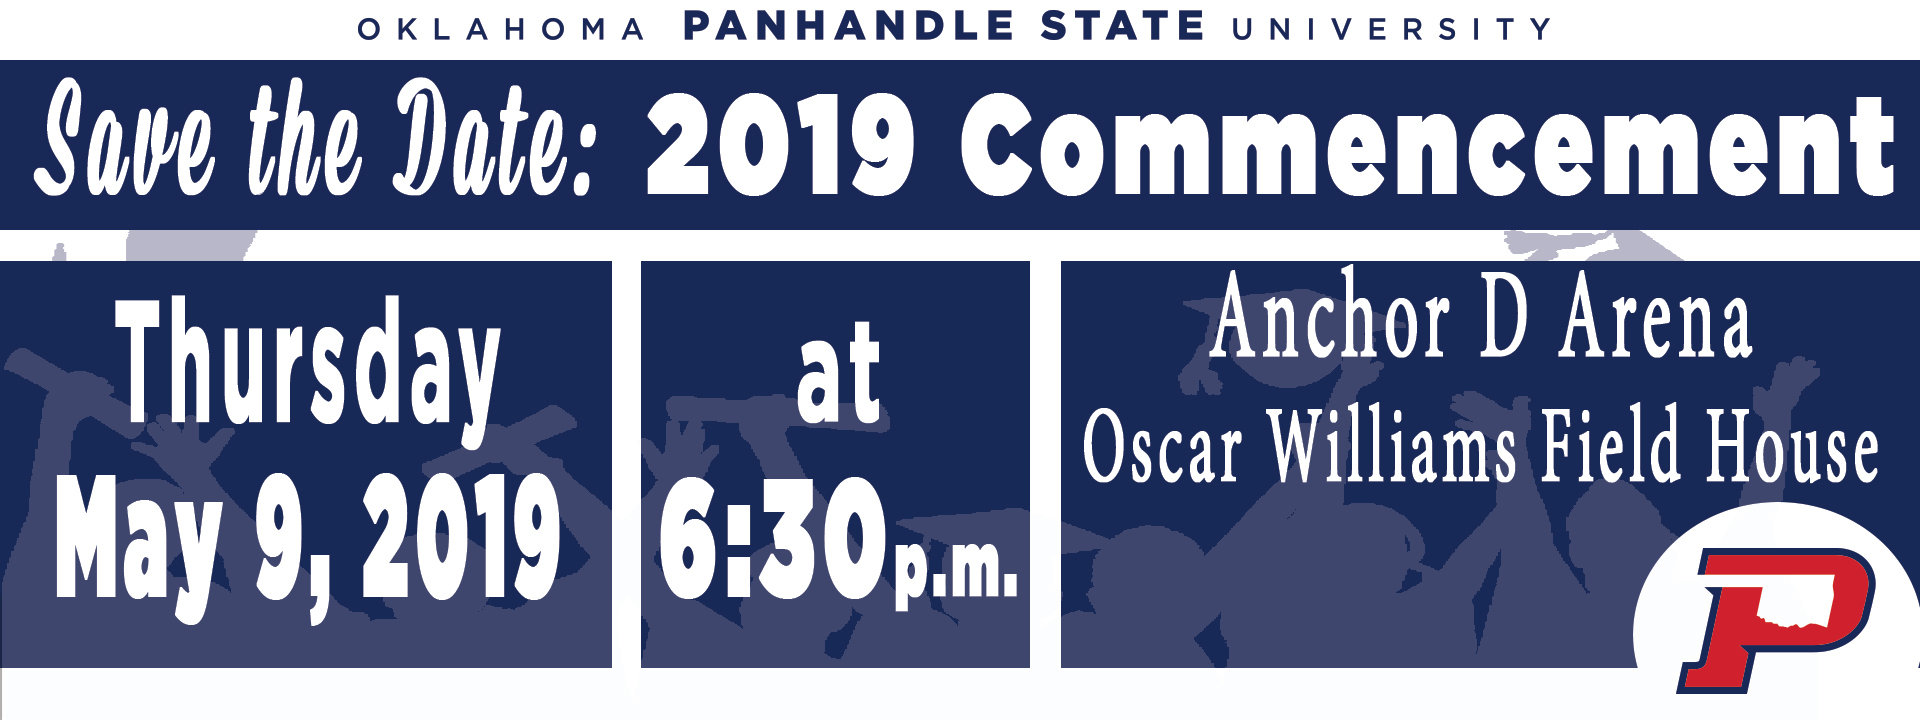 Save the date: 2019 Commencement - Thursday May 9, 2019 at 6:30p.m. at Anchor D Arena in Oscar Williams Field House